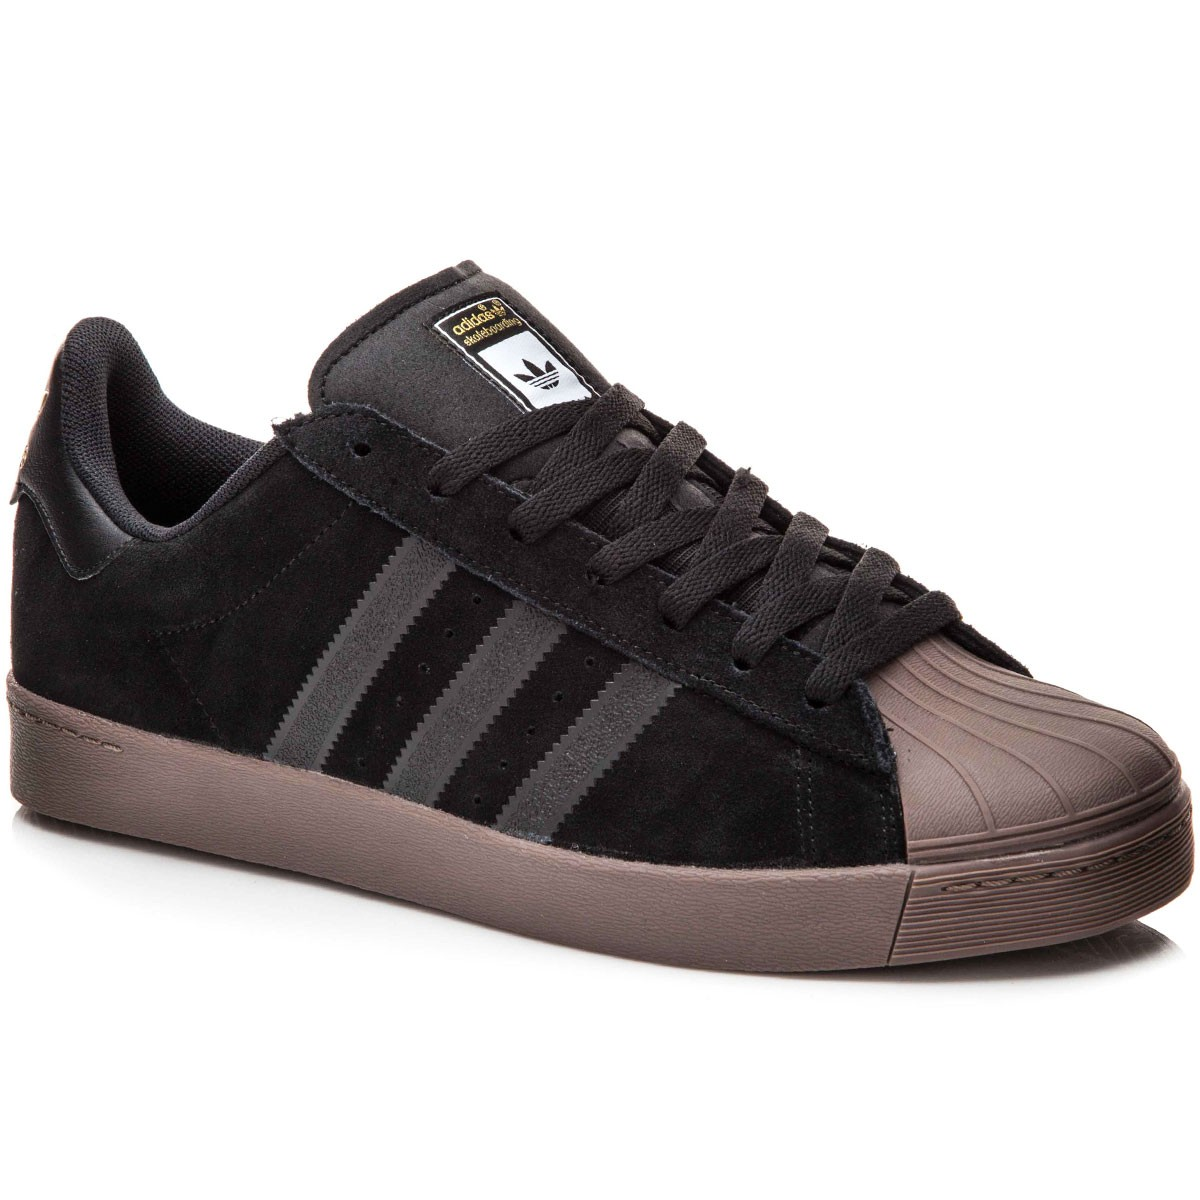 adidas superstar vulc adv shoes blackmetallic goldred